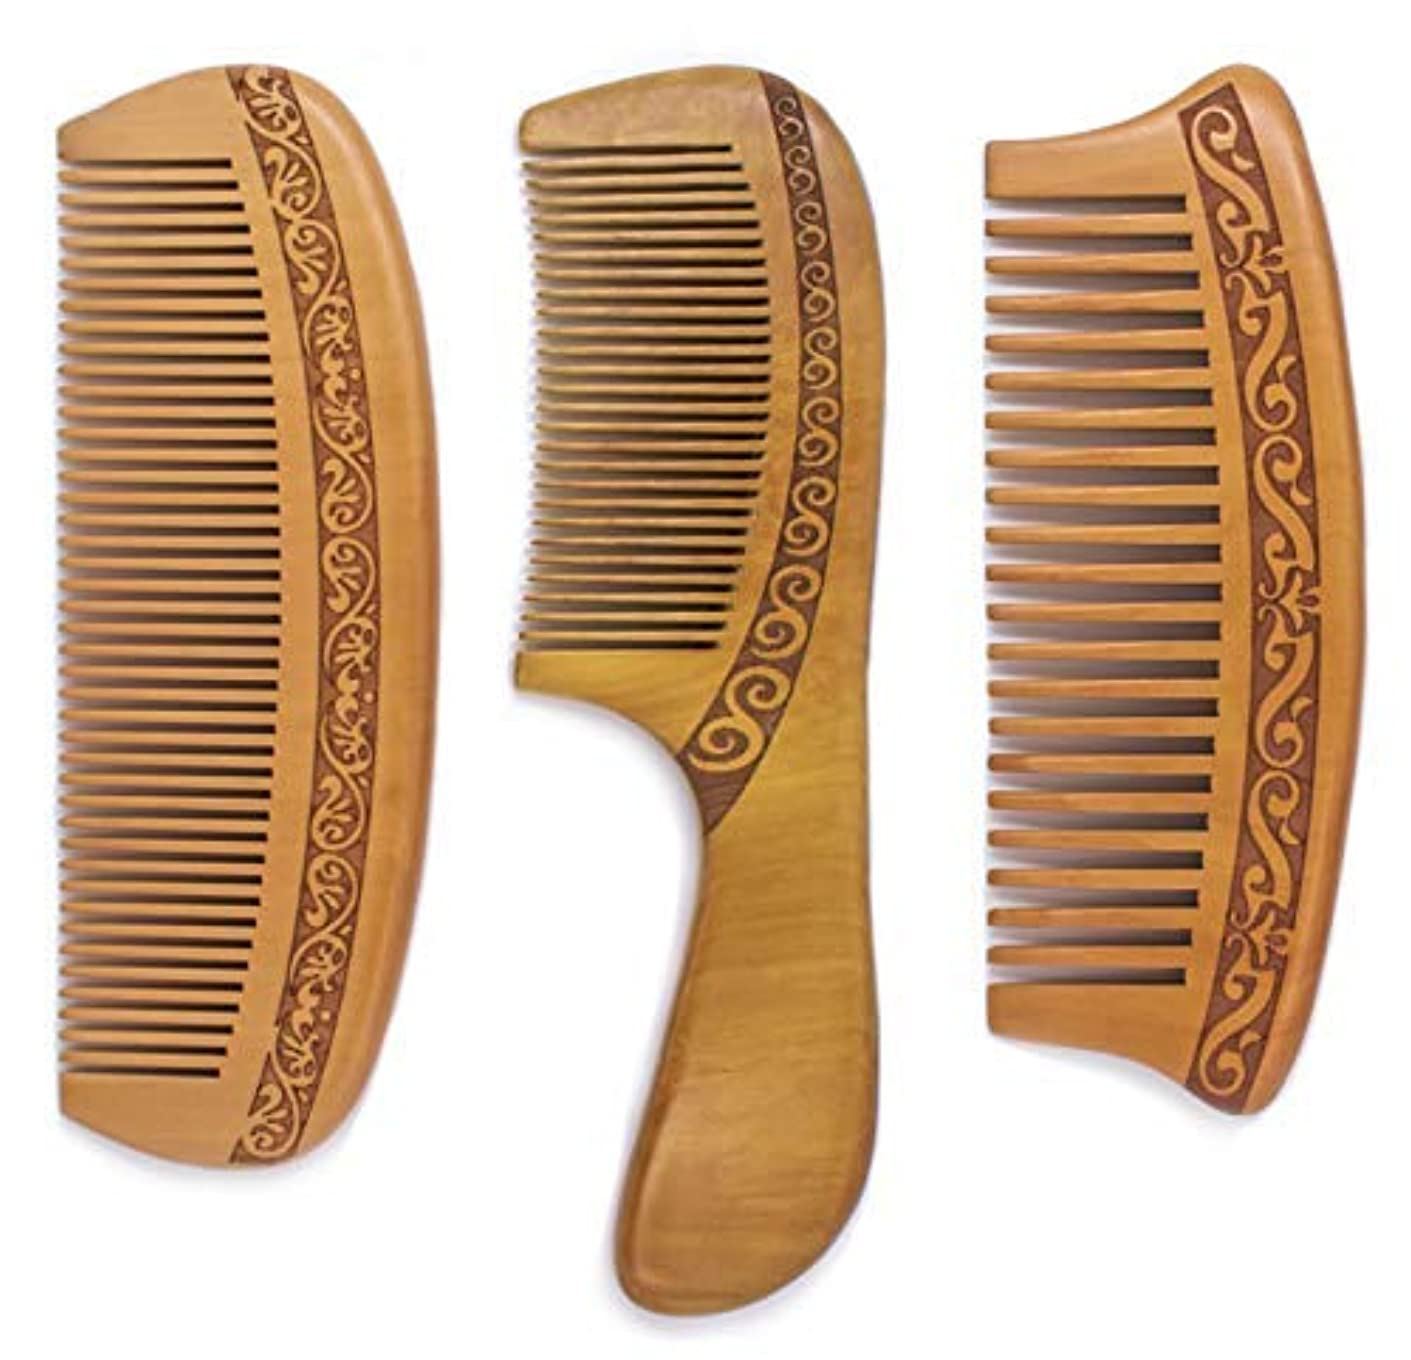 Detangling Comb, Wooden Detangling Fine and Wide Tooth Shower Comb SET, Anti-Static, Great for All Type Hair, Beard, Mustache. Made from Natural Peach Wood, 3 Pieces [並行輸入品]